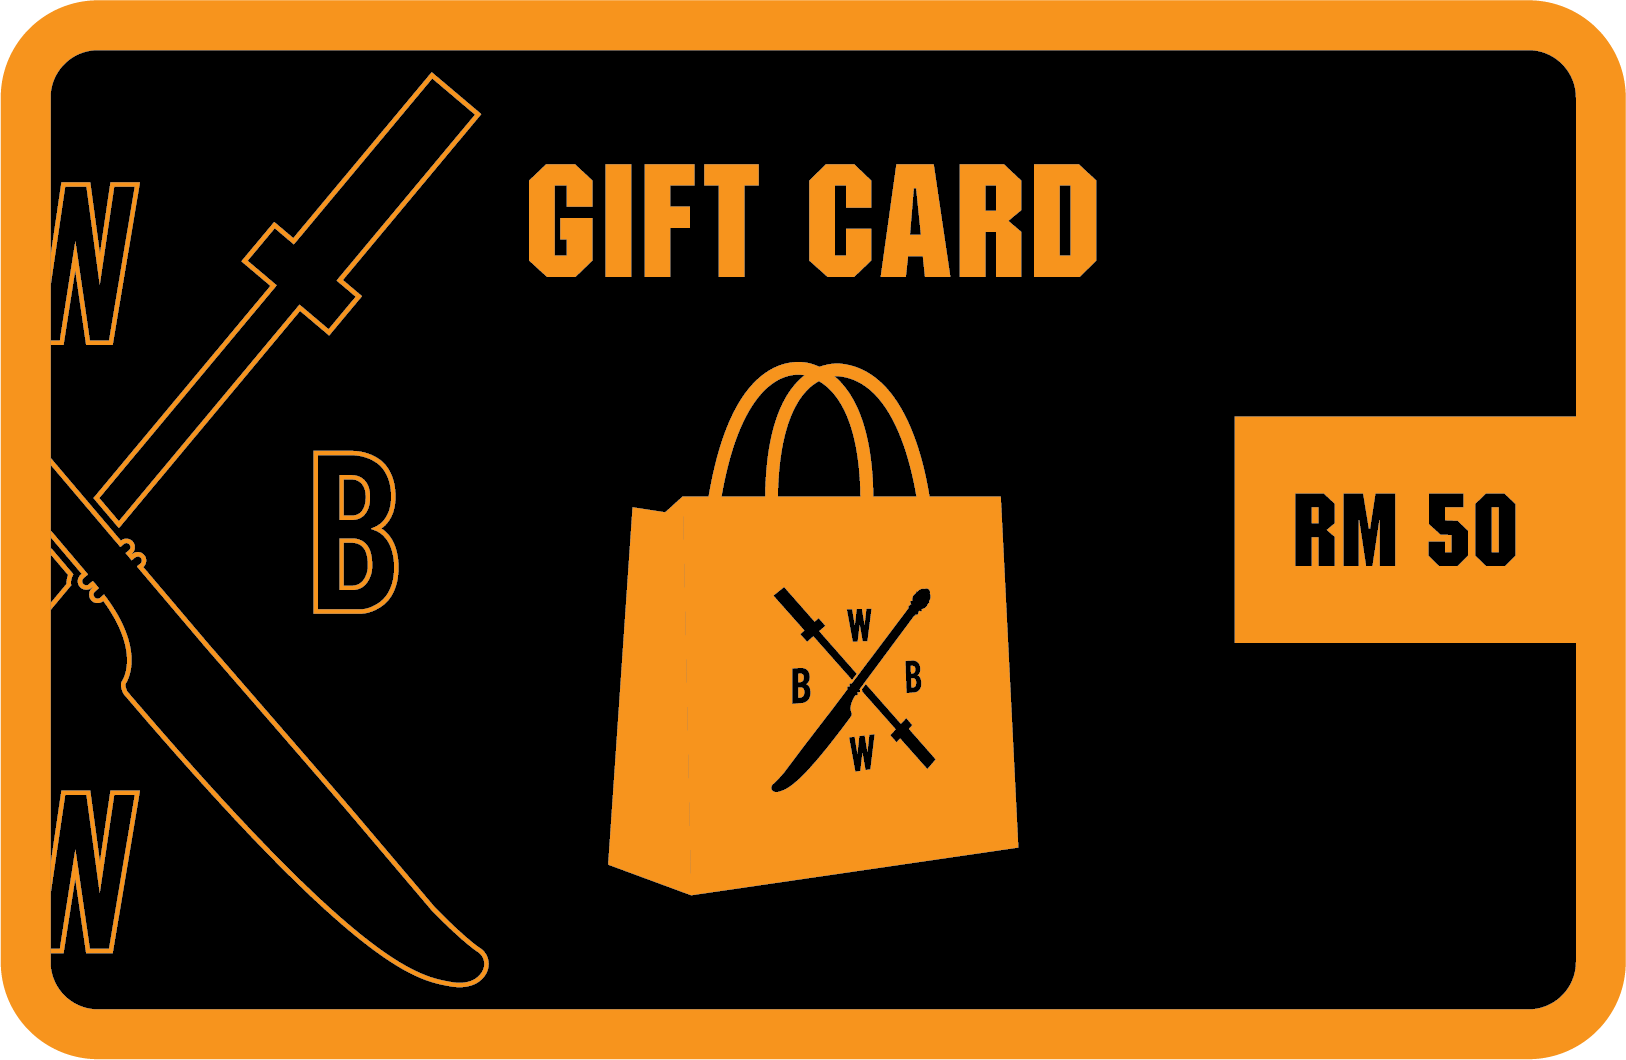 Gift Card RM50 - Outline Thick.png